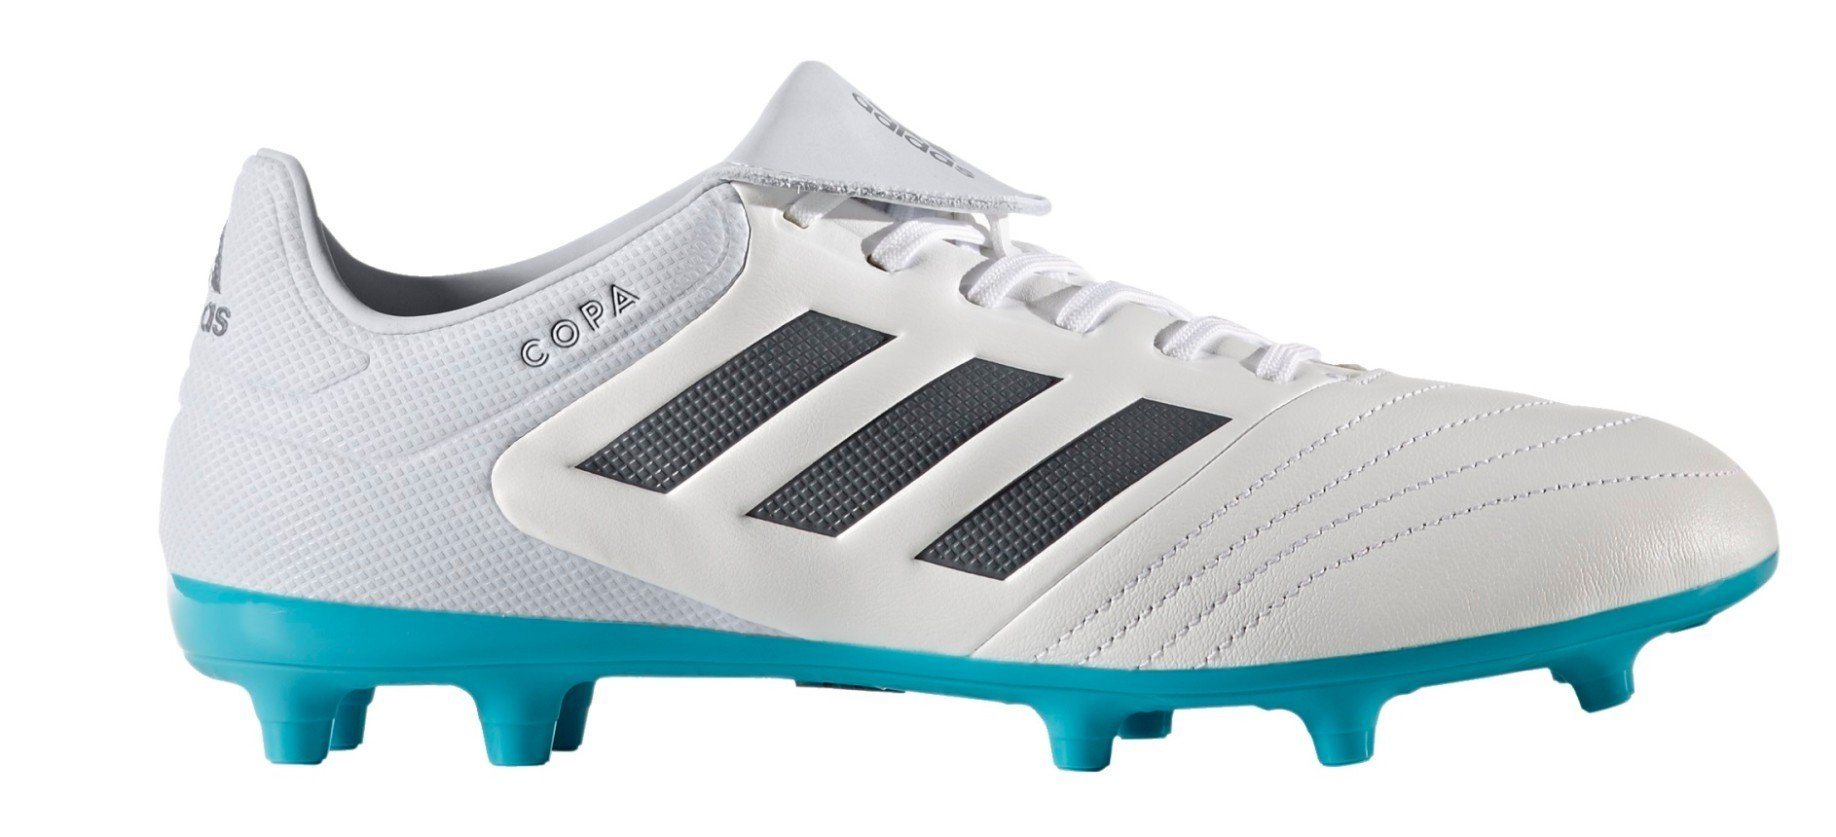 buy online e6799 35e13 Football boots Adidas Copa 17.3 FG Dust Storm Pack colore White - Adidas -  SportIT.com